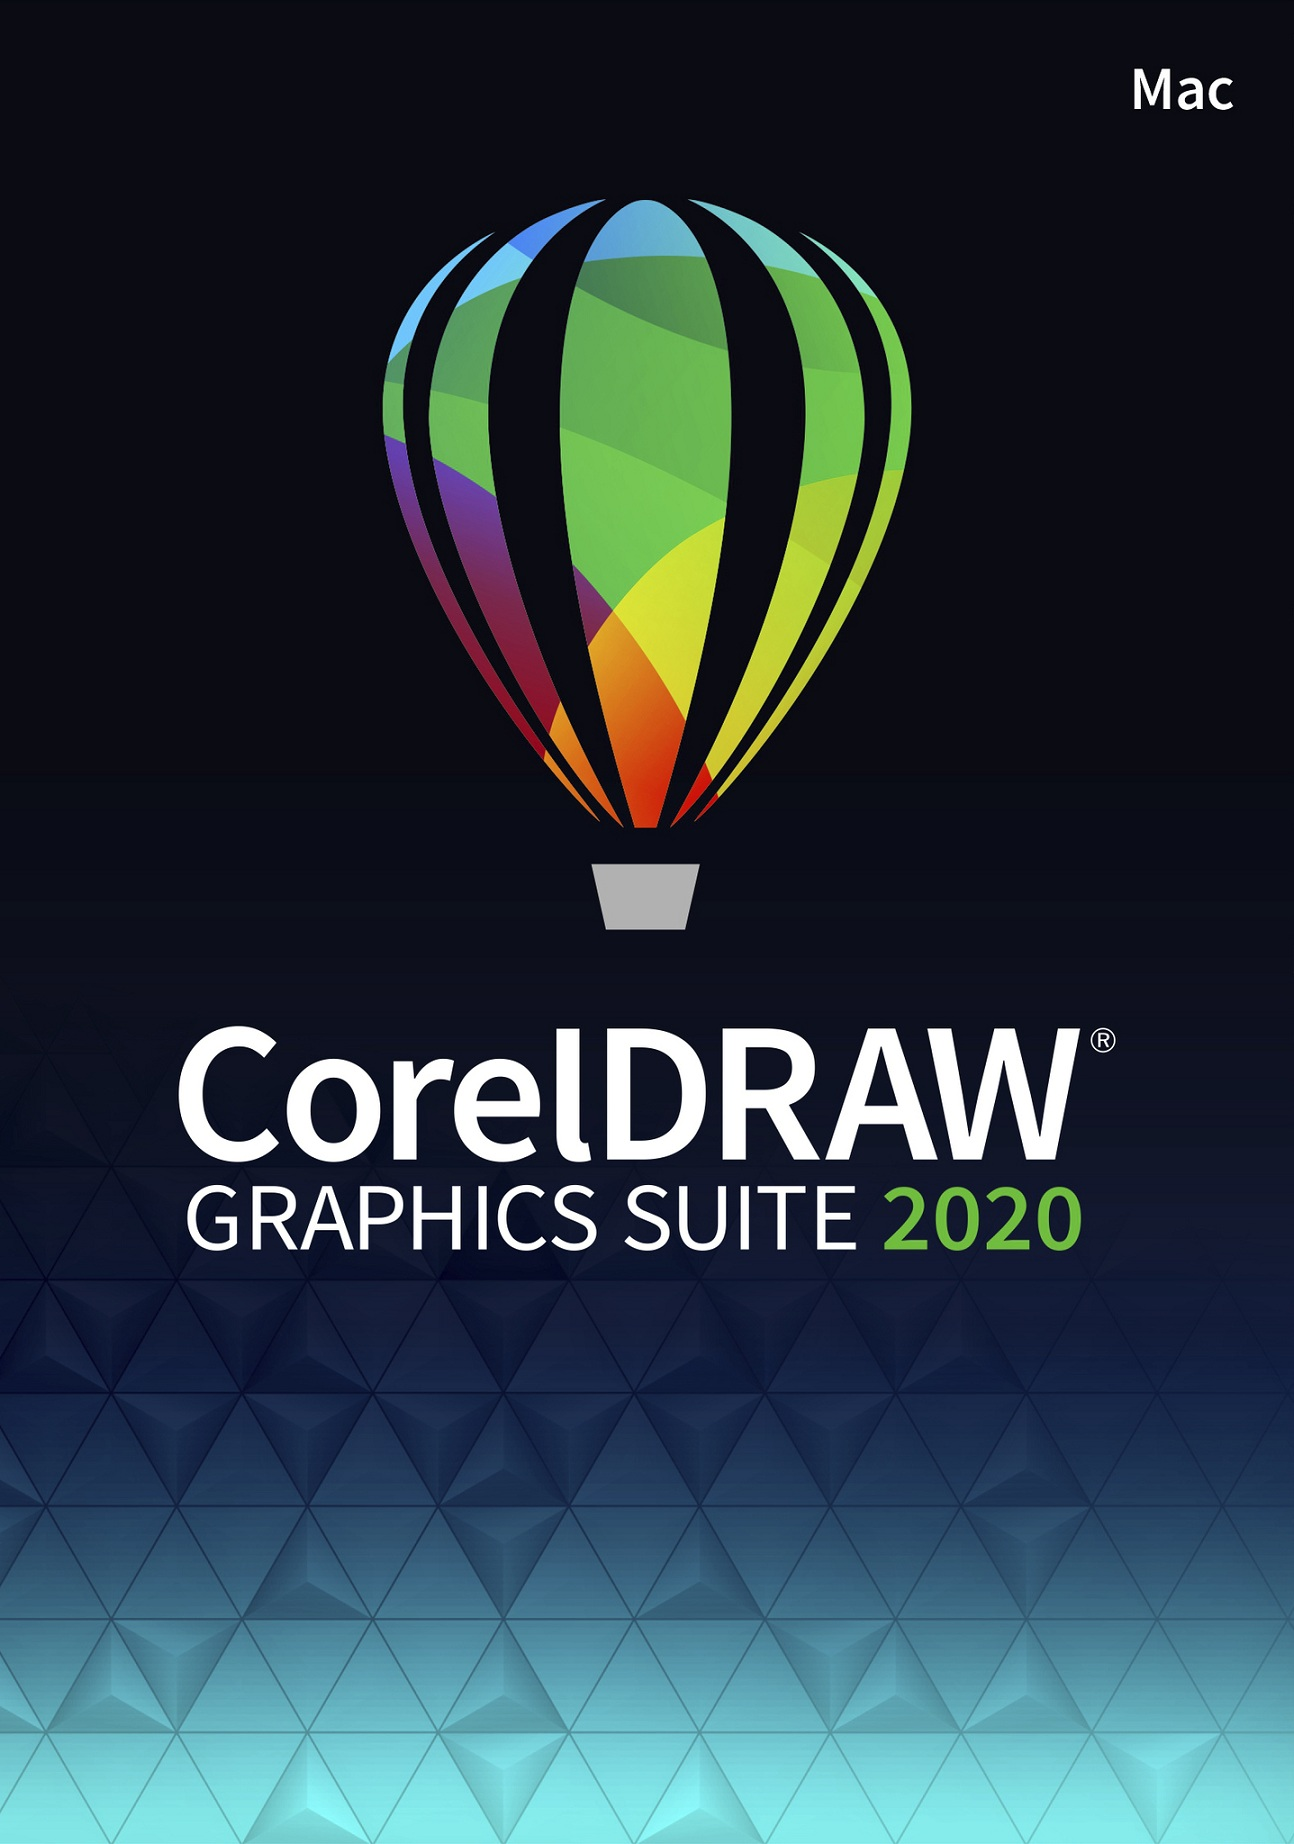 CorelDRAW Graphics Suite 2020 Education License (MAC) (Single User)